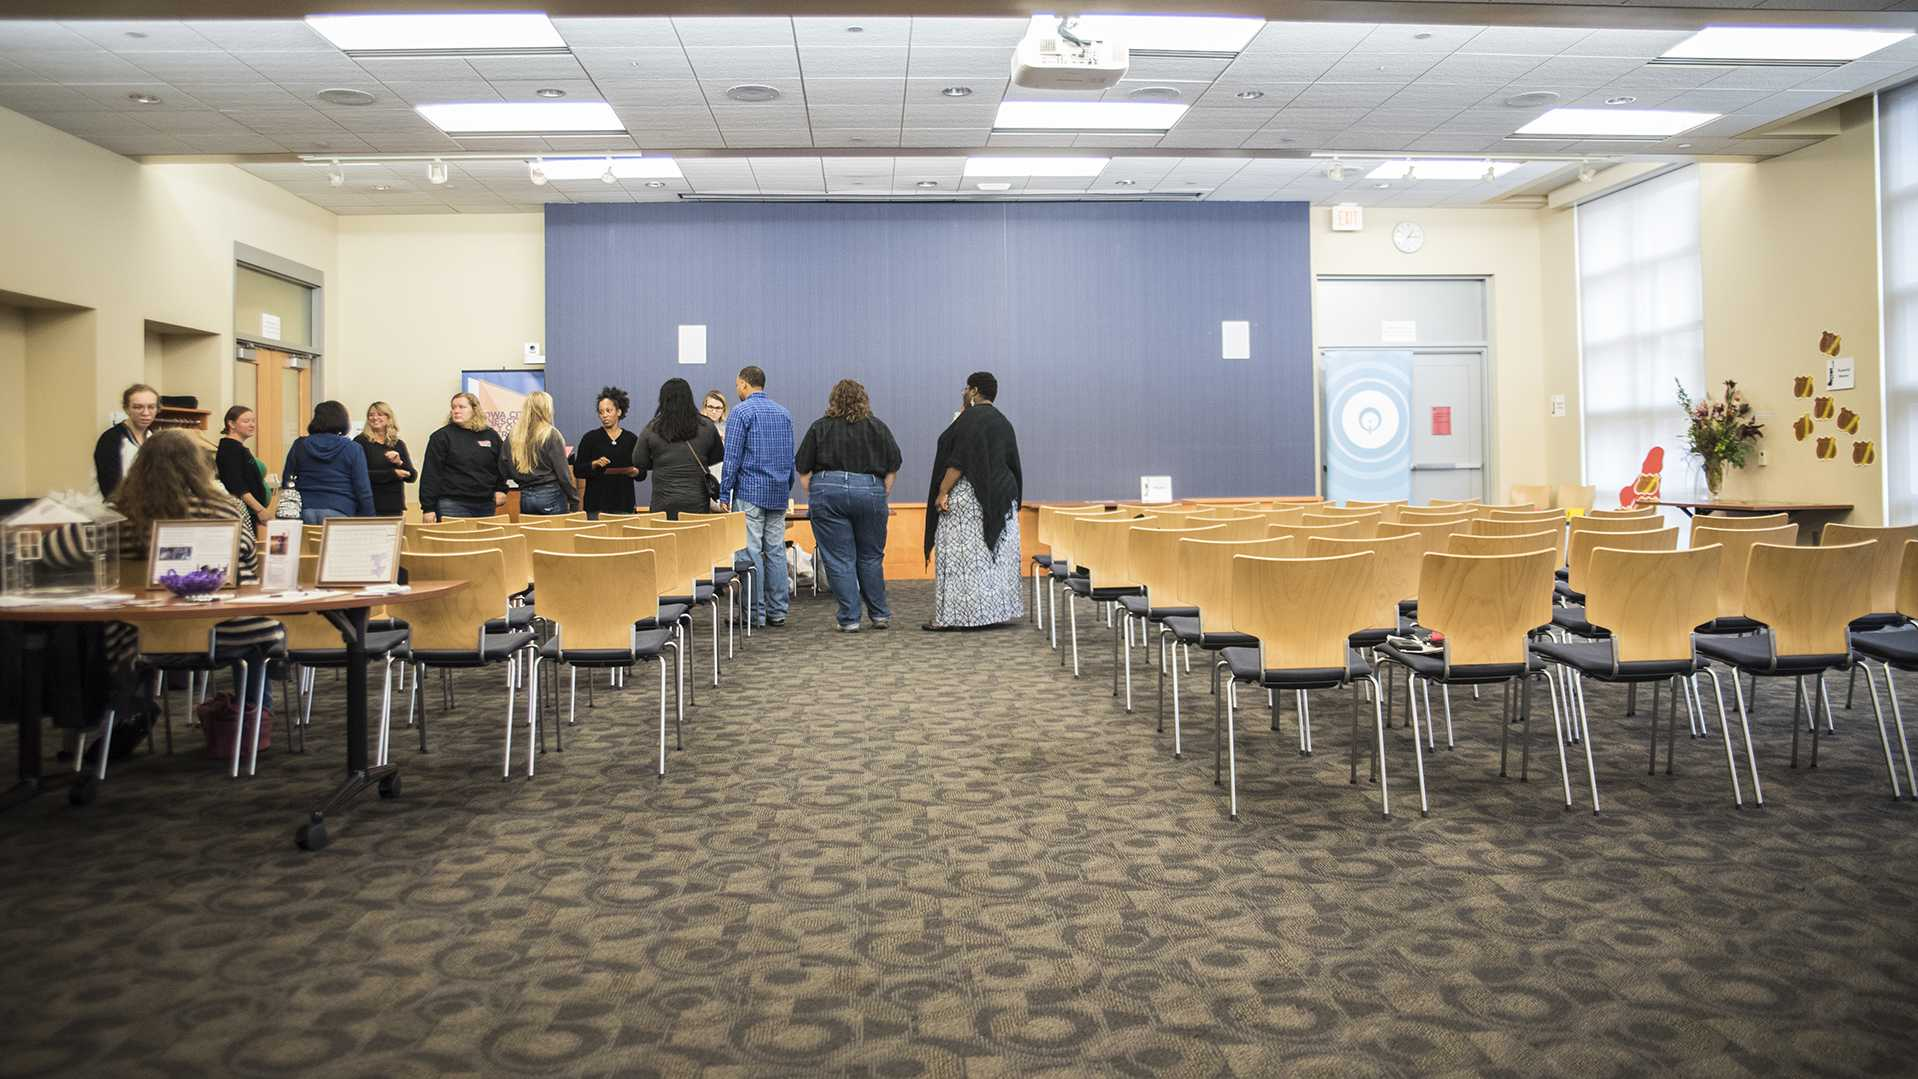 People gather in the Iowa City Public Library in October, 2017. (Ben Smith/The Daily Iowan)